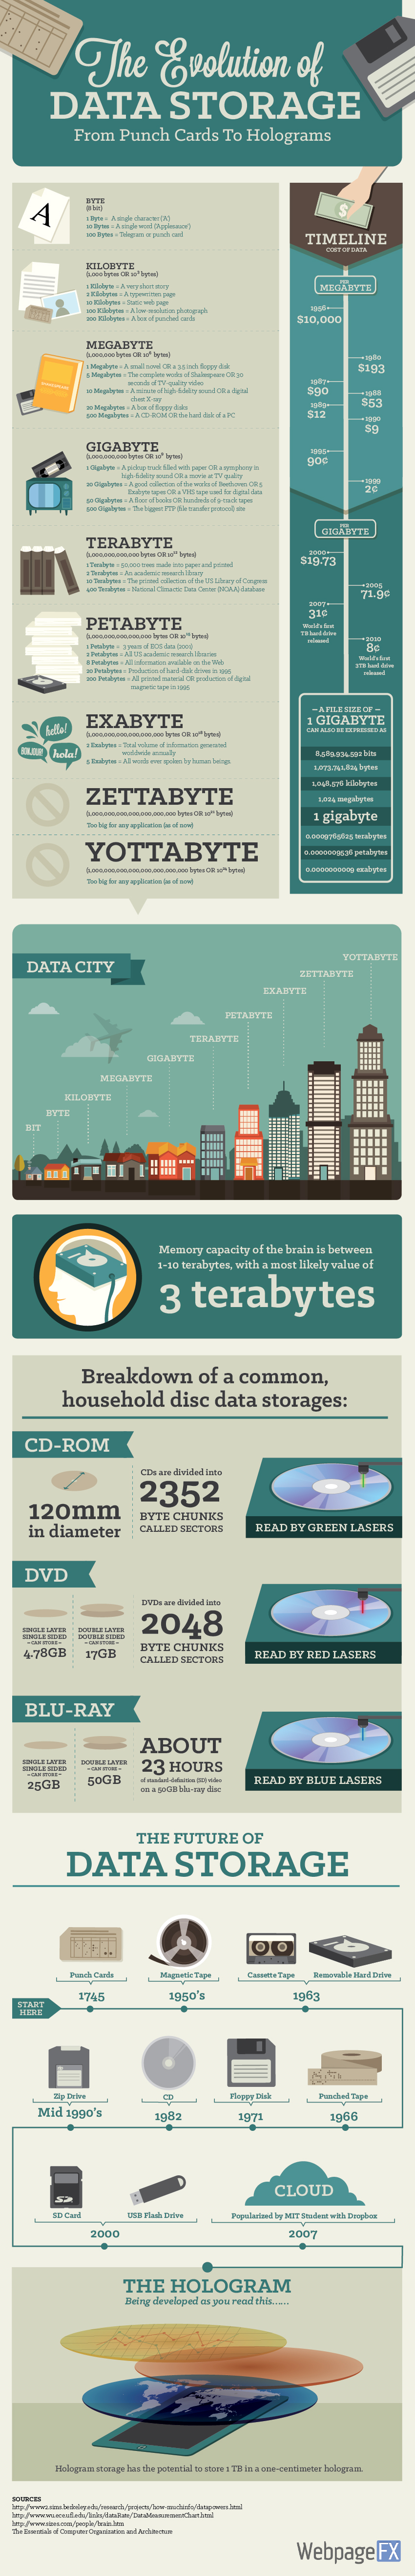 1data-storage-infographic